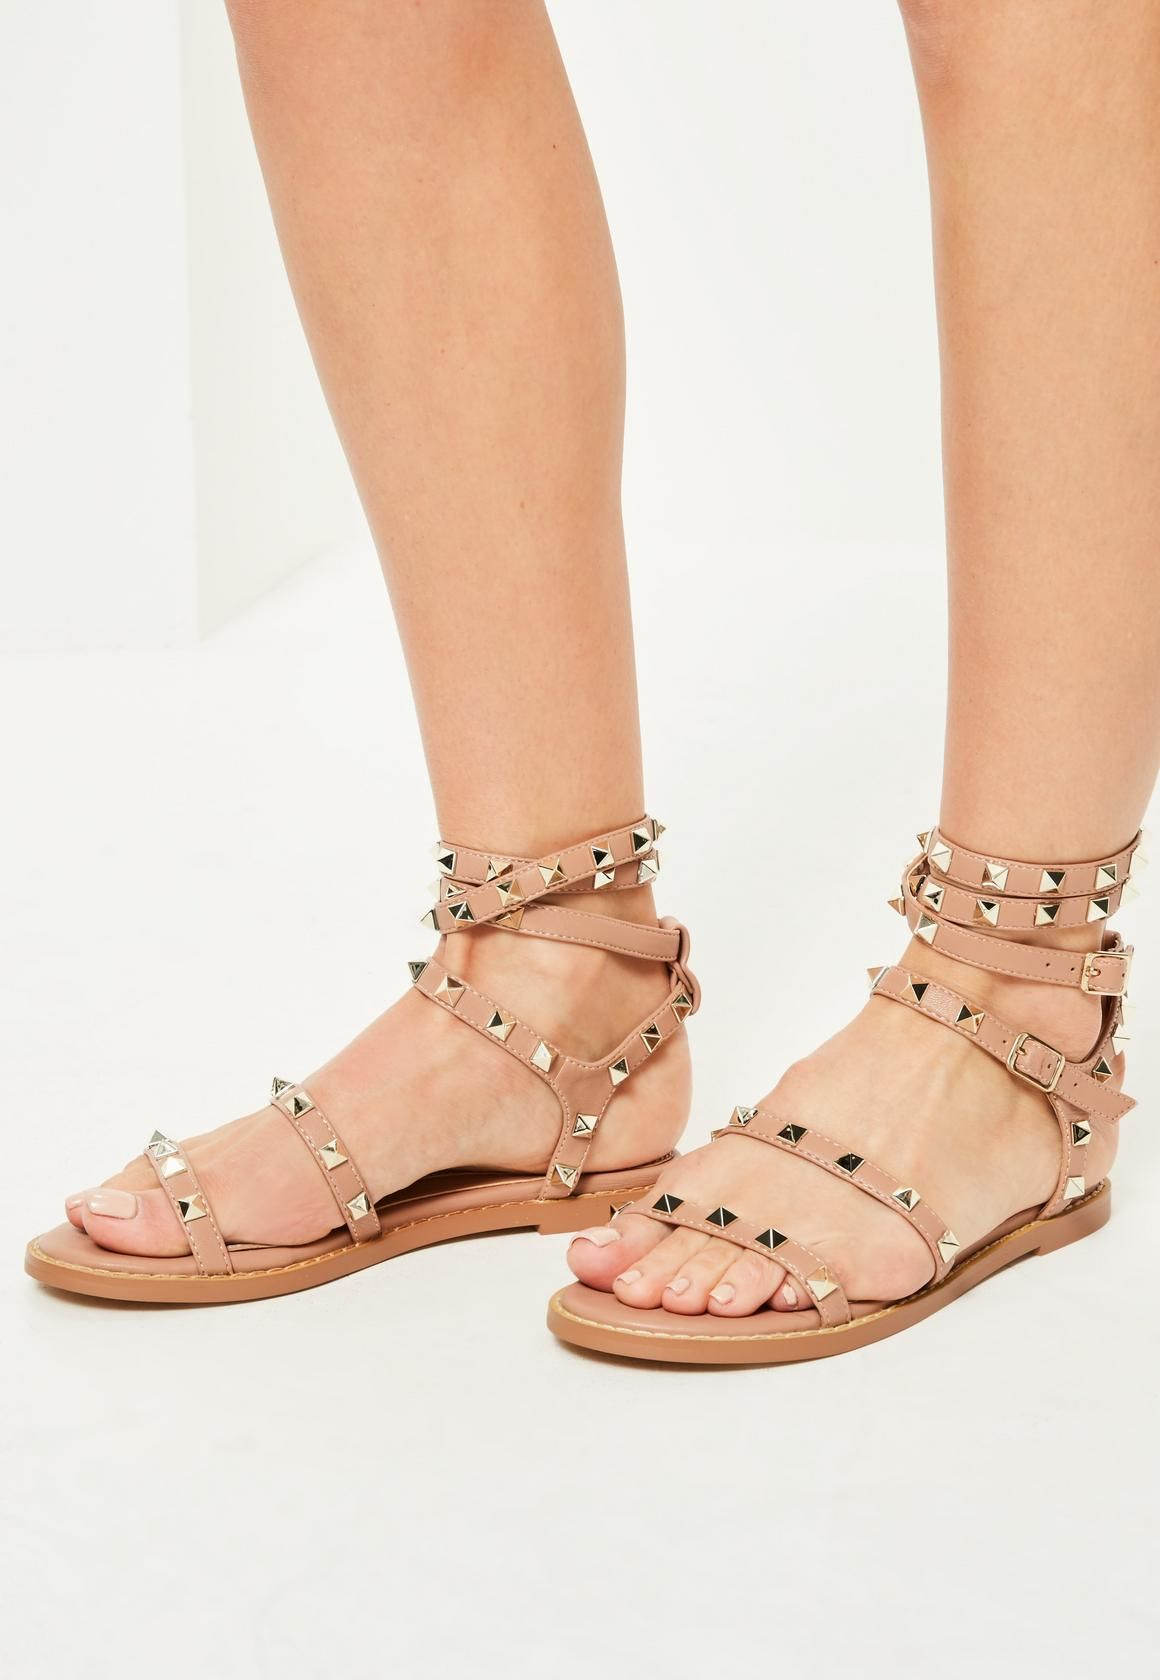 fee8bb9b5d8d Missguided - Nude Studded Gladiator Sandals